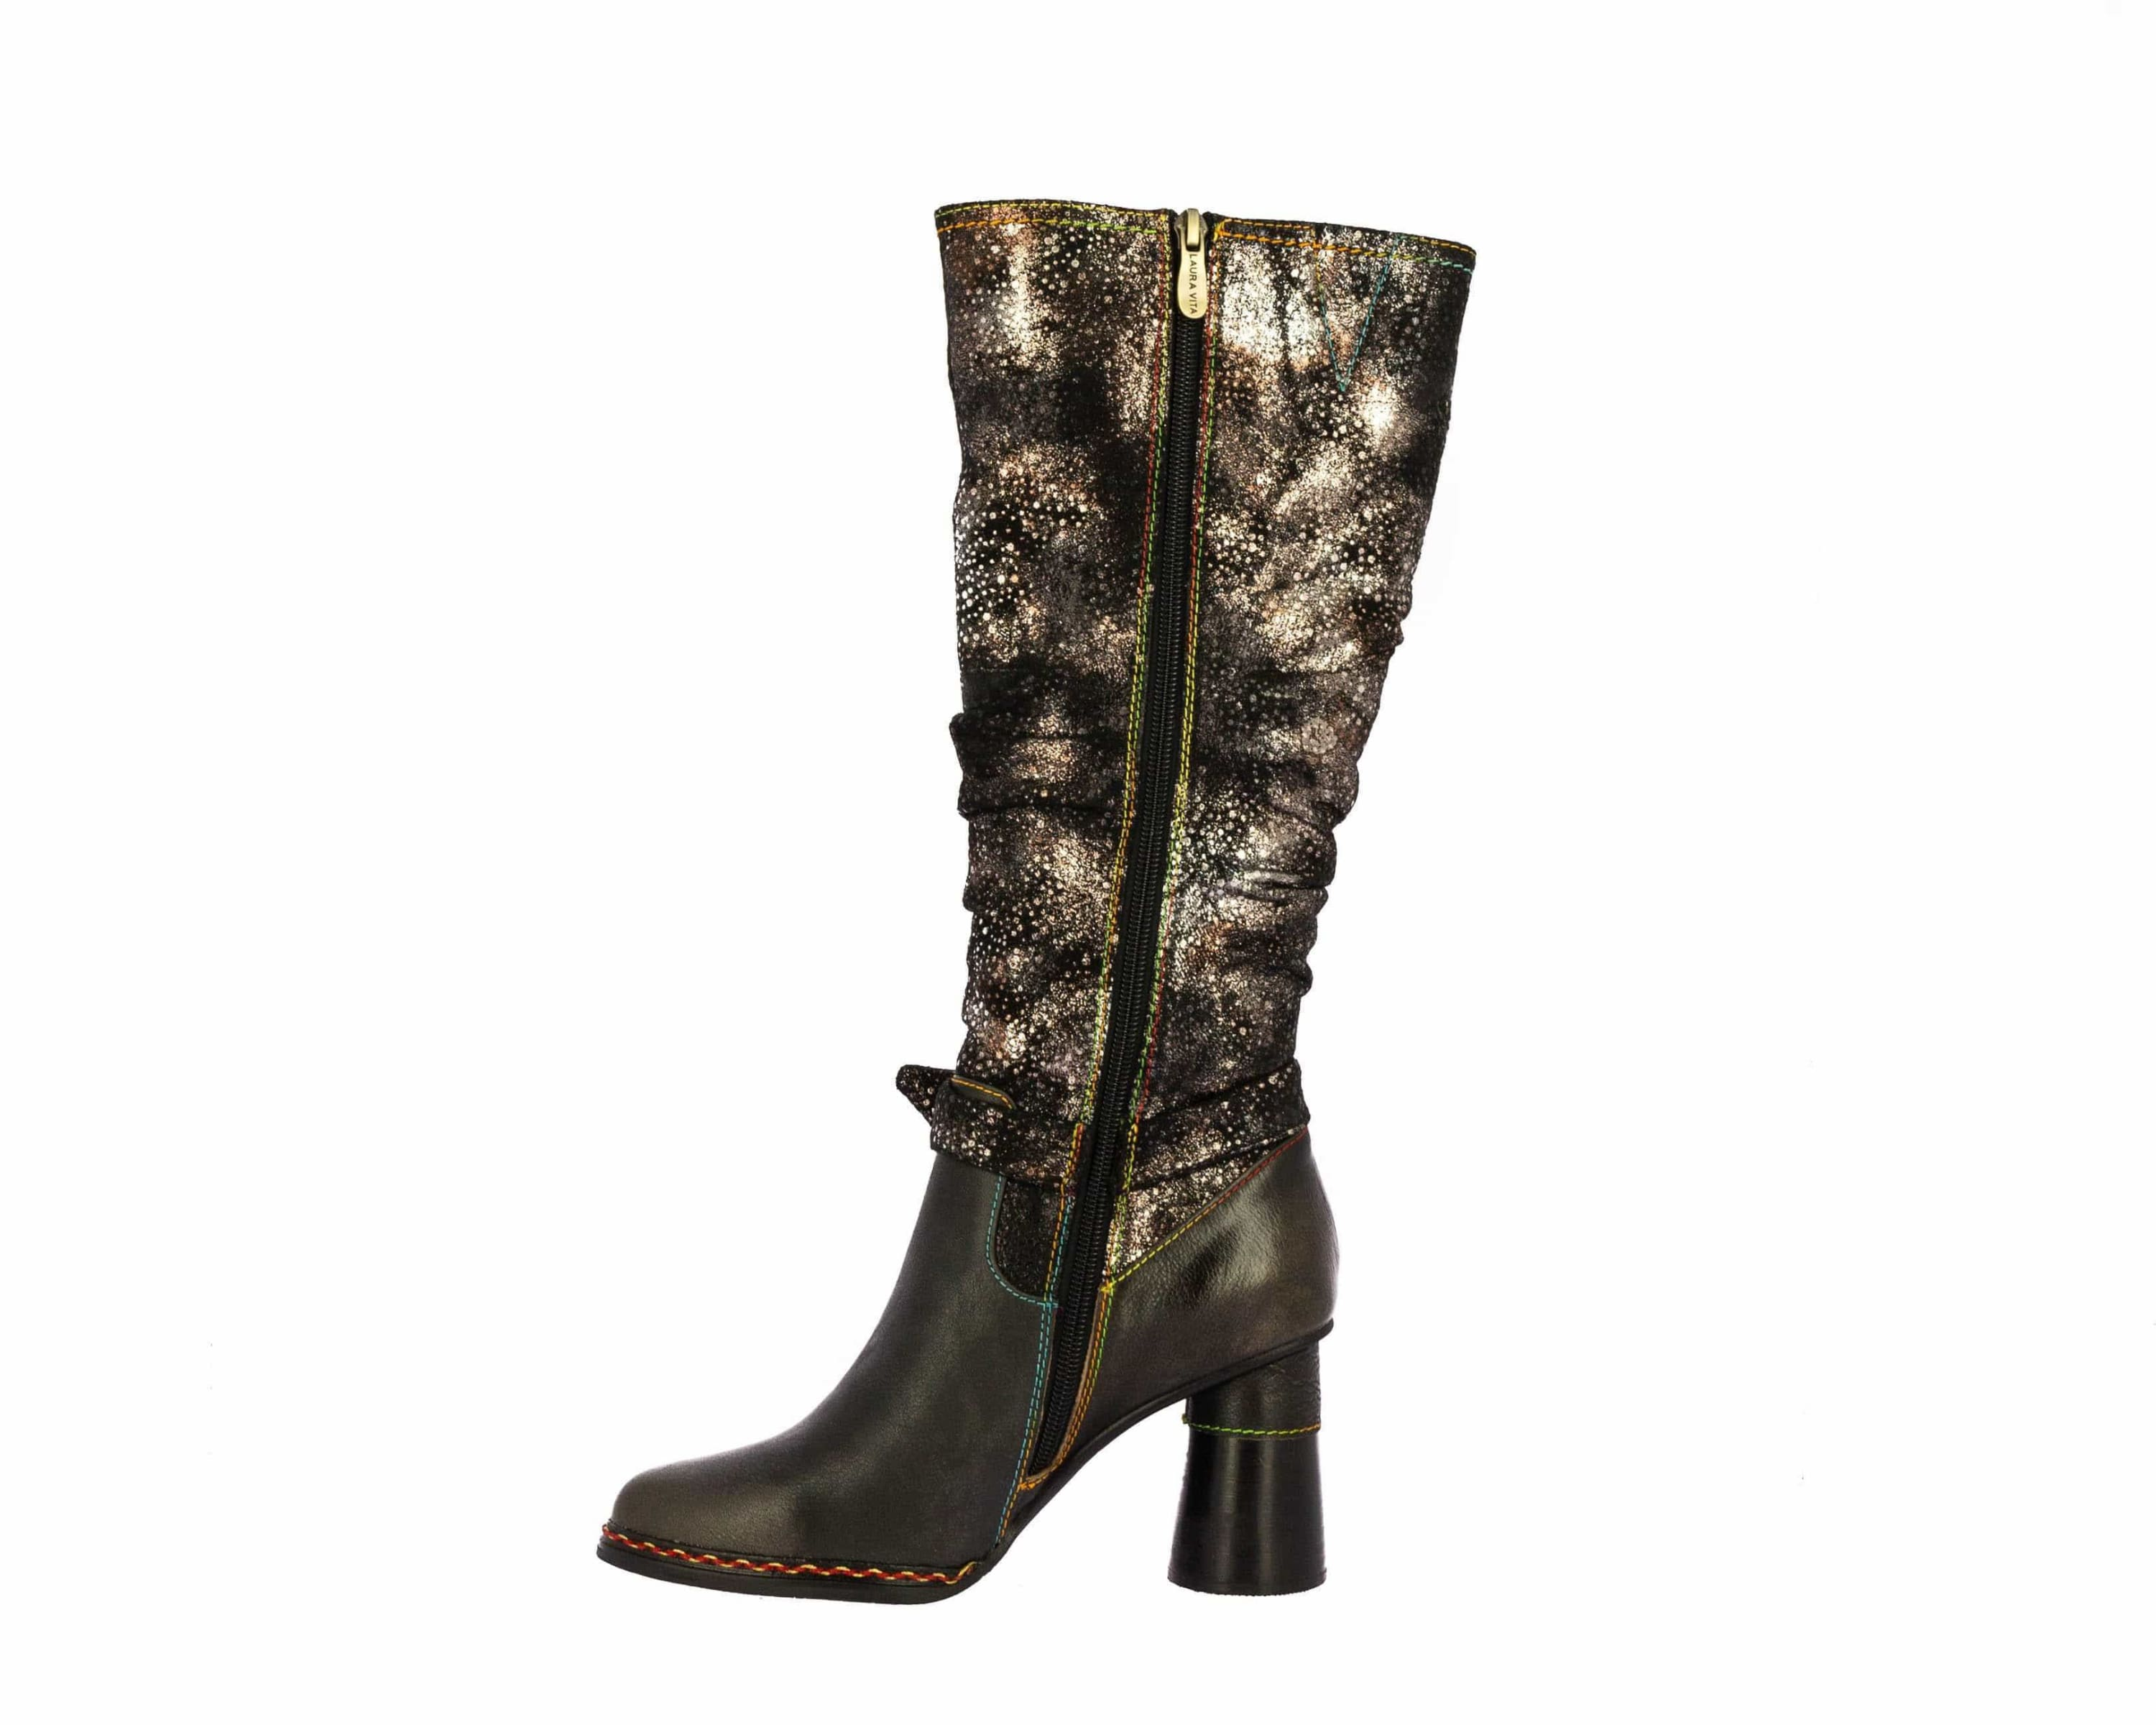 Chaussure GUCSTOO 03 - Botte